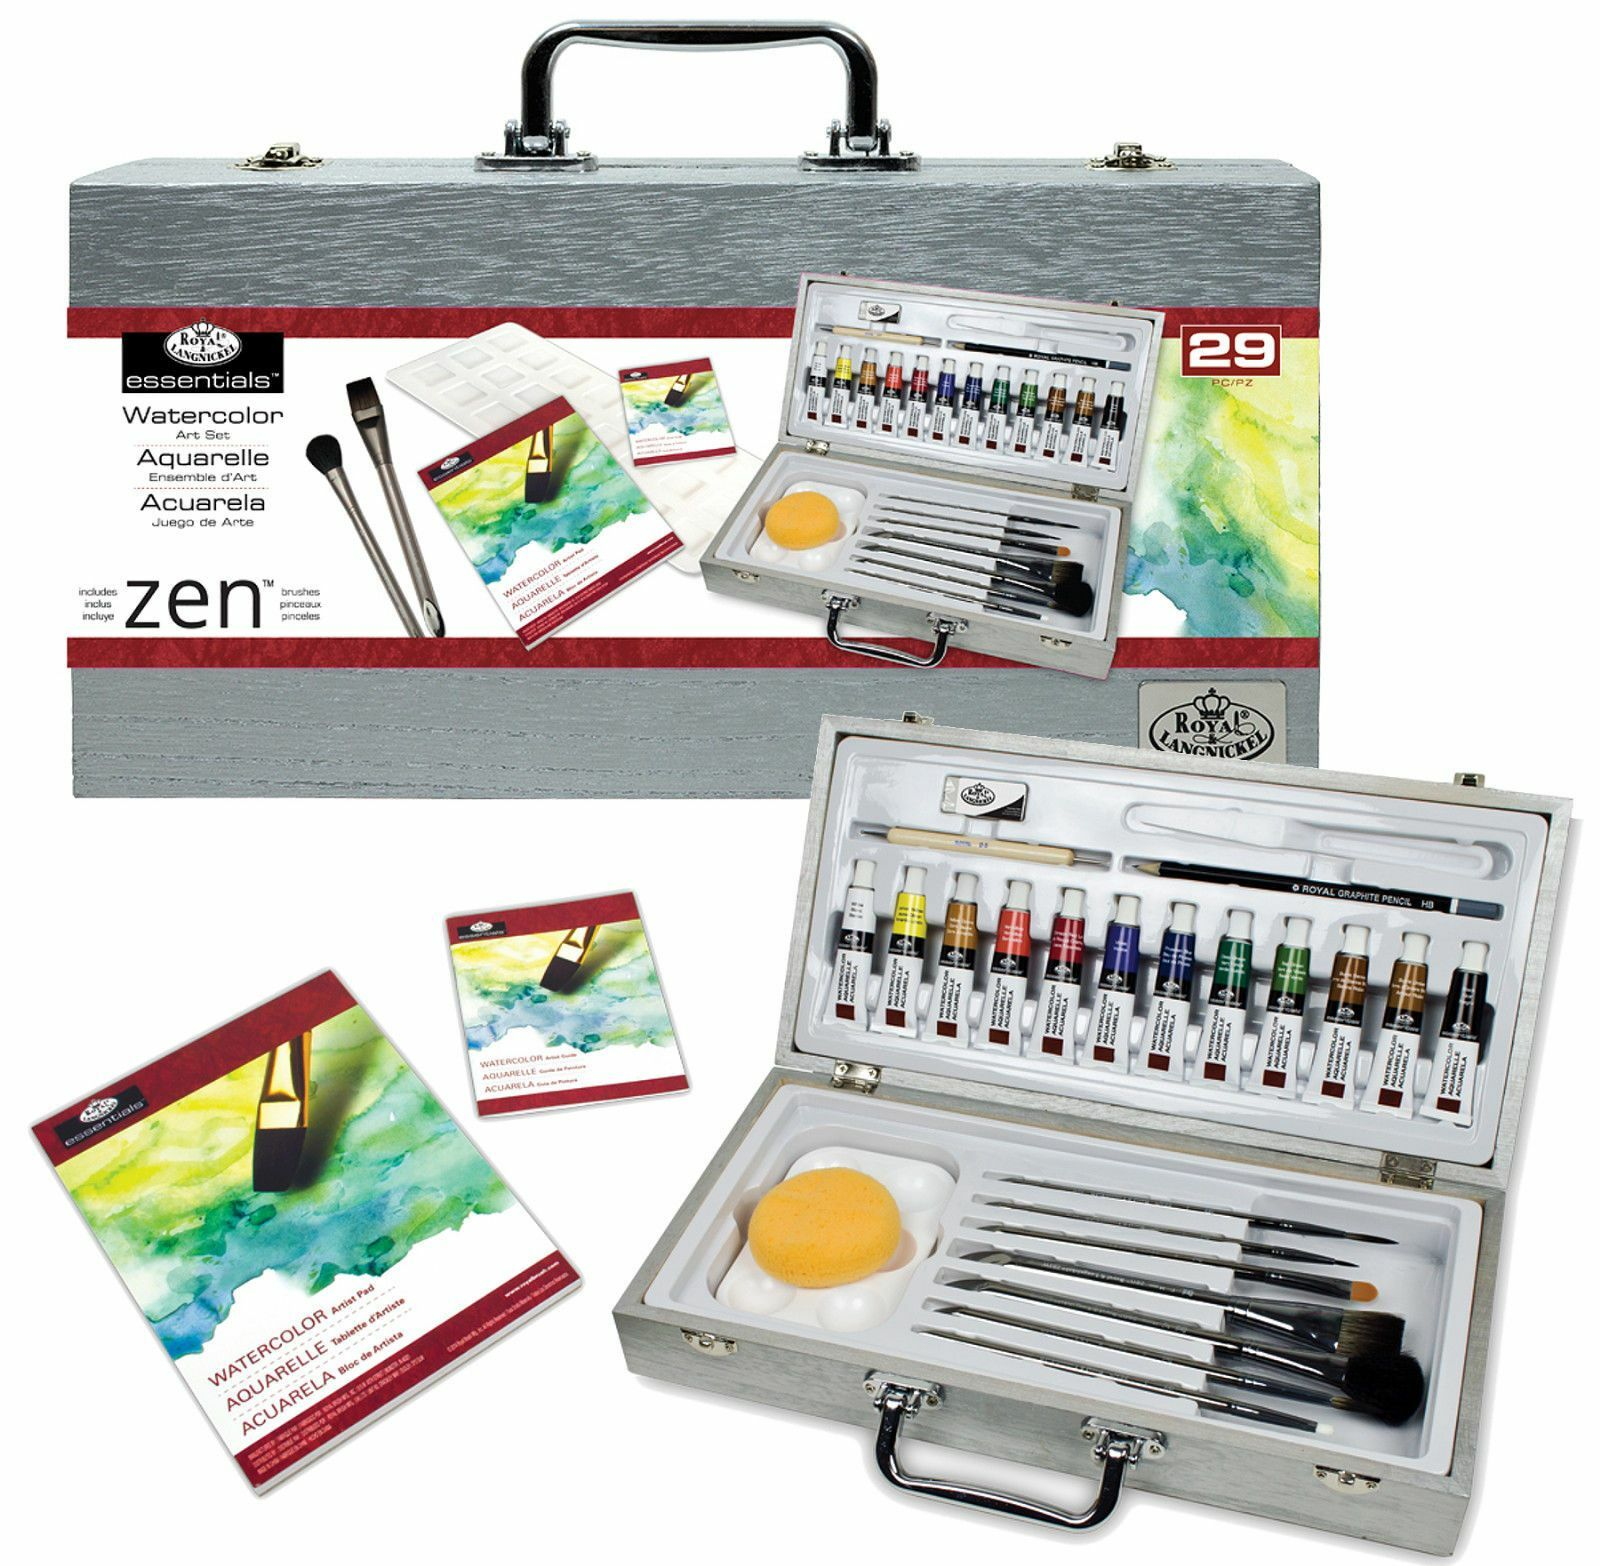 29 piece zen watercolour painting artist art box set brushes pads paints wat8301. Black Bedroom Furniture Sets. Home Design Ideas